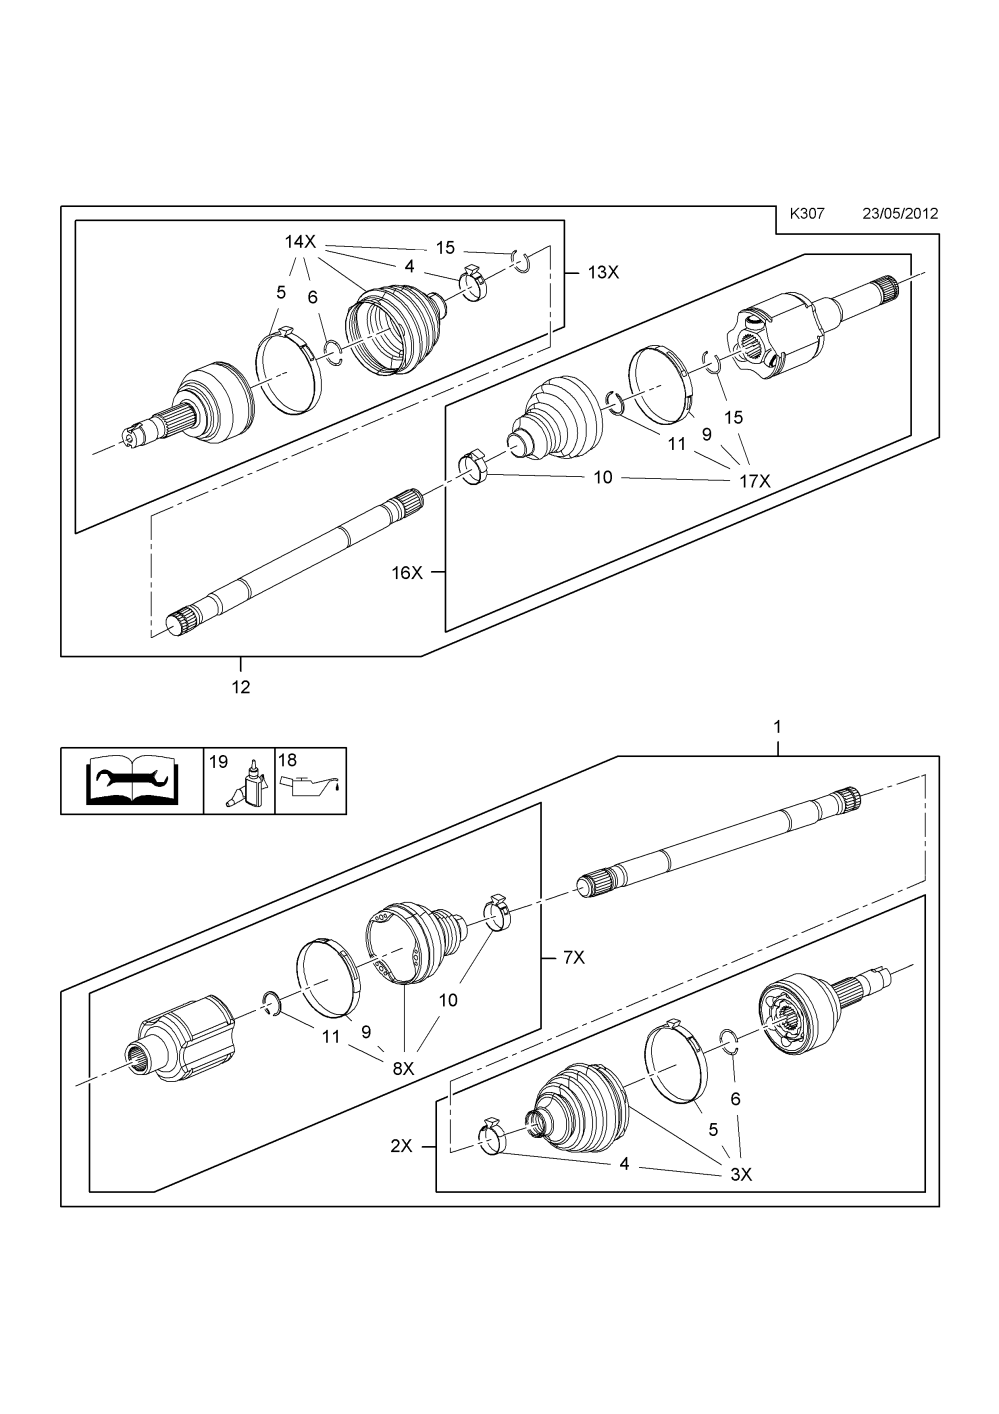 medium resolution of front axle drive shaft a18xer 2h0 petrol engine used with 6t40 automatic transmission opel mokka